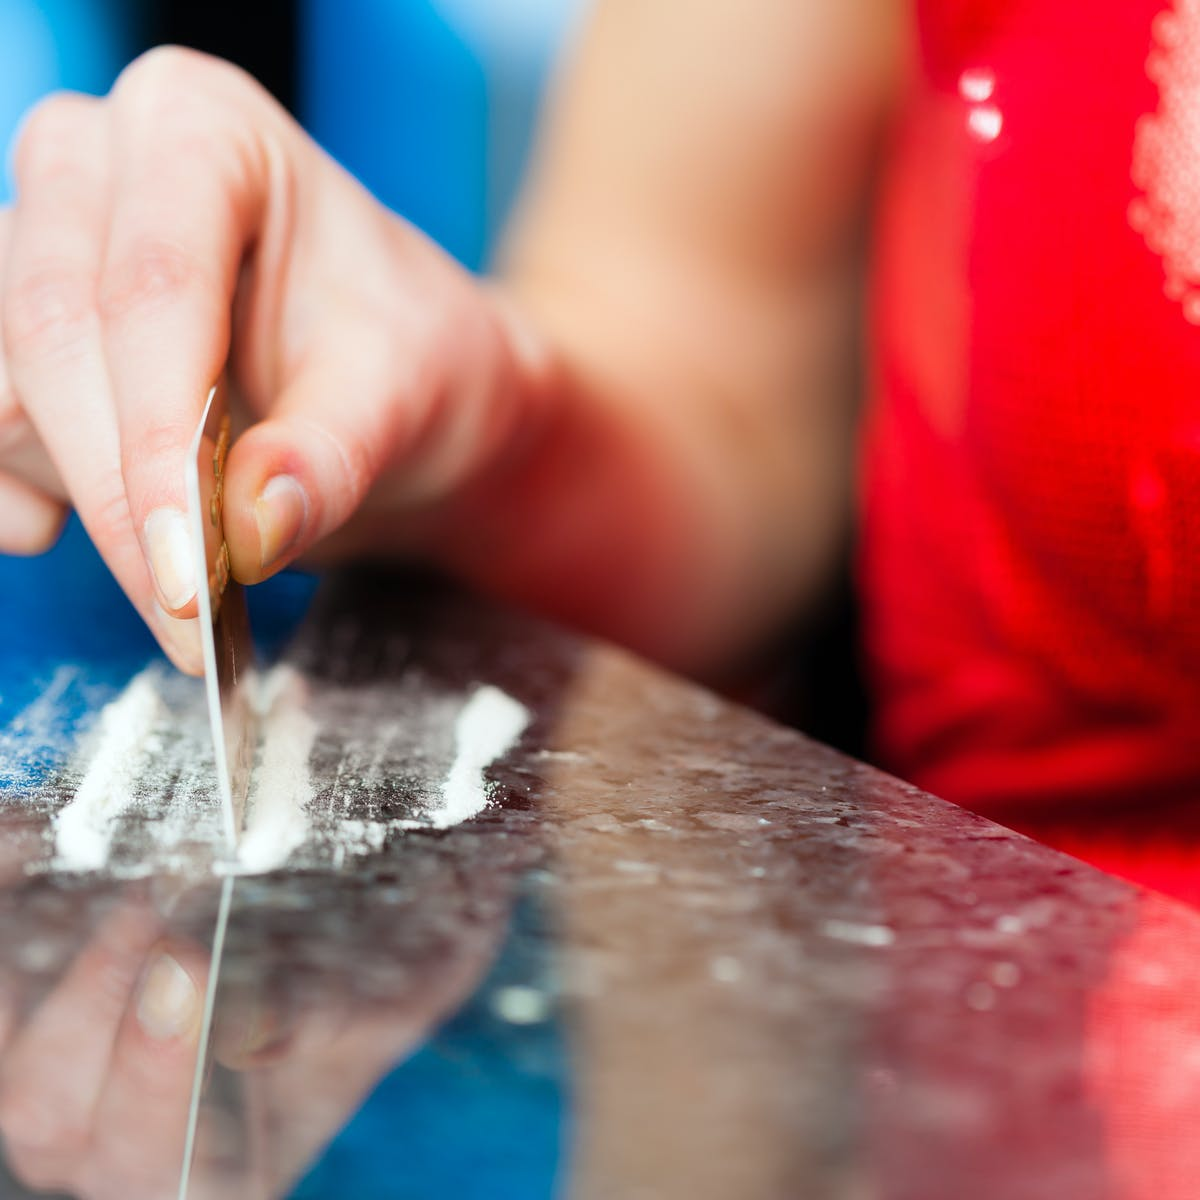 Middle class cocaine users are Sajid Javid's scapegoat for